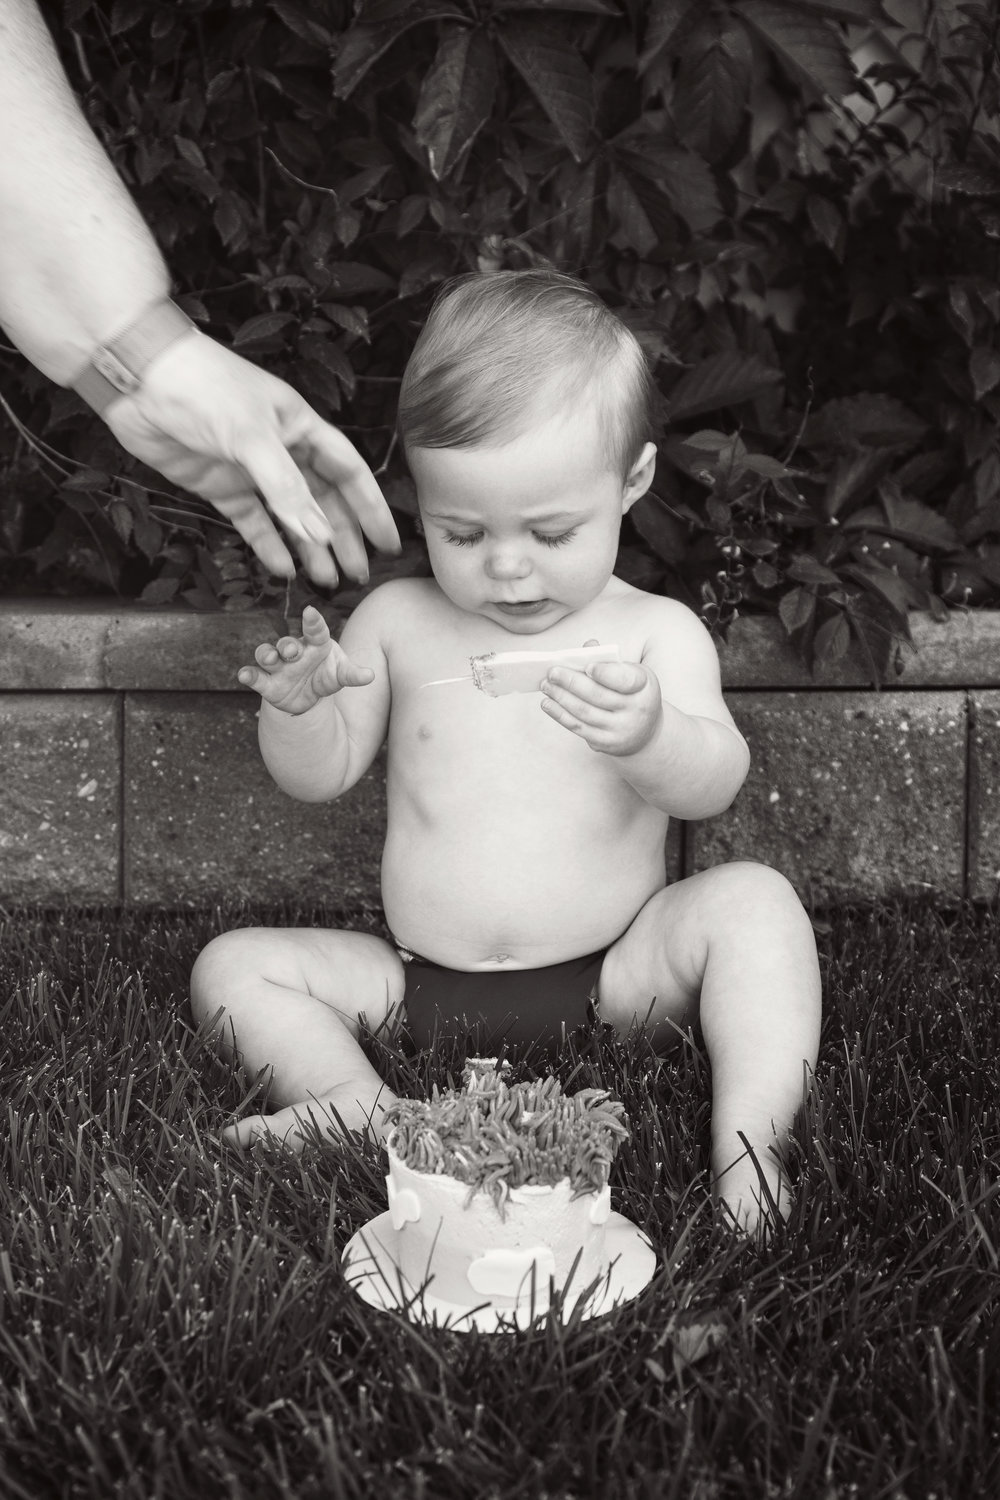 Theo_1stbday_32_bw.jpg